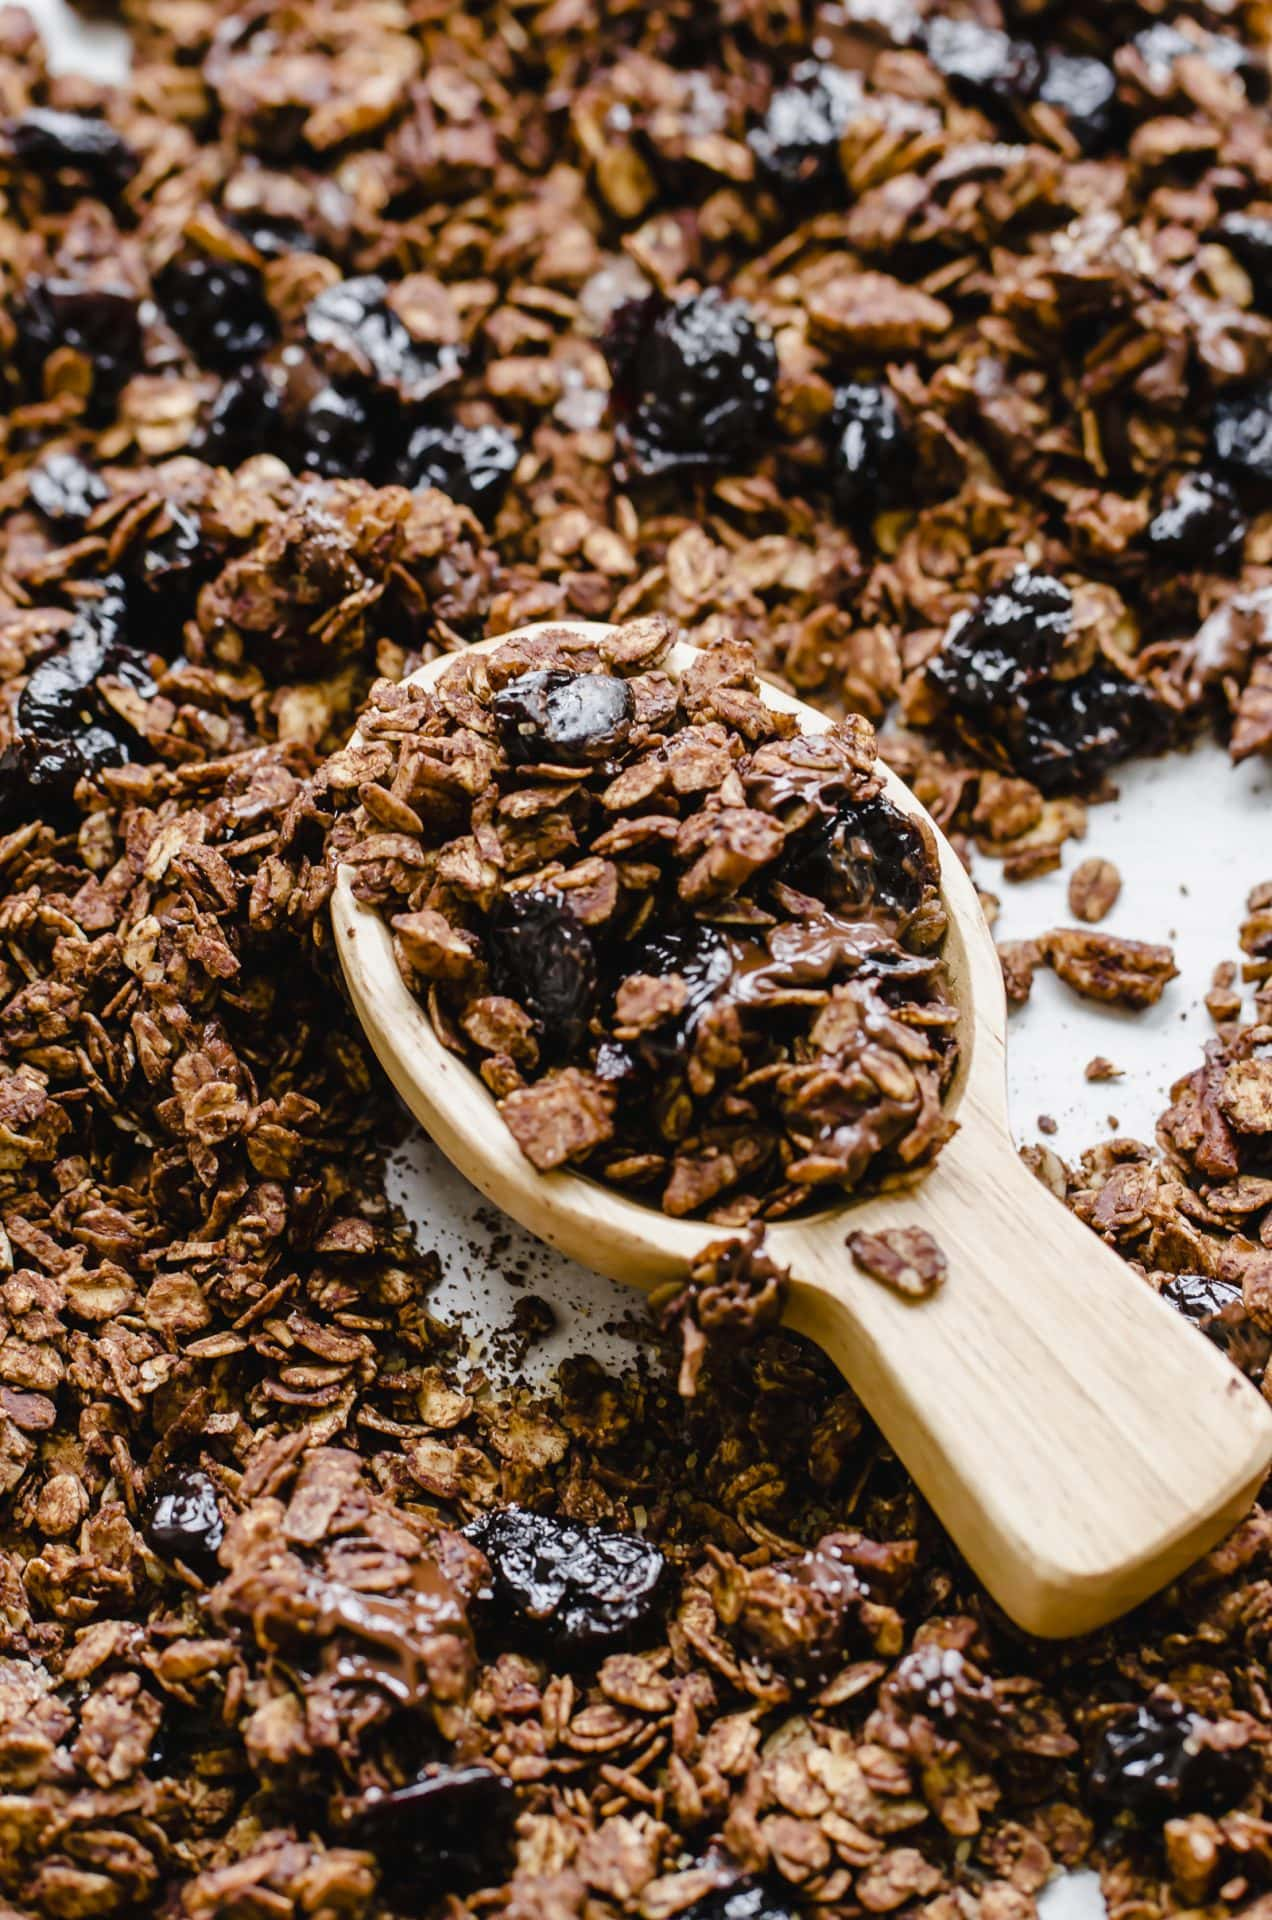 A wooden scoop filled with chocolate granola on a pan of granola.